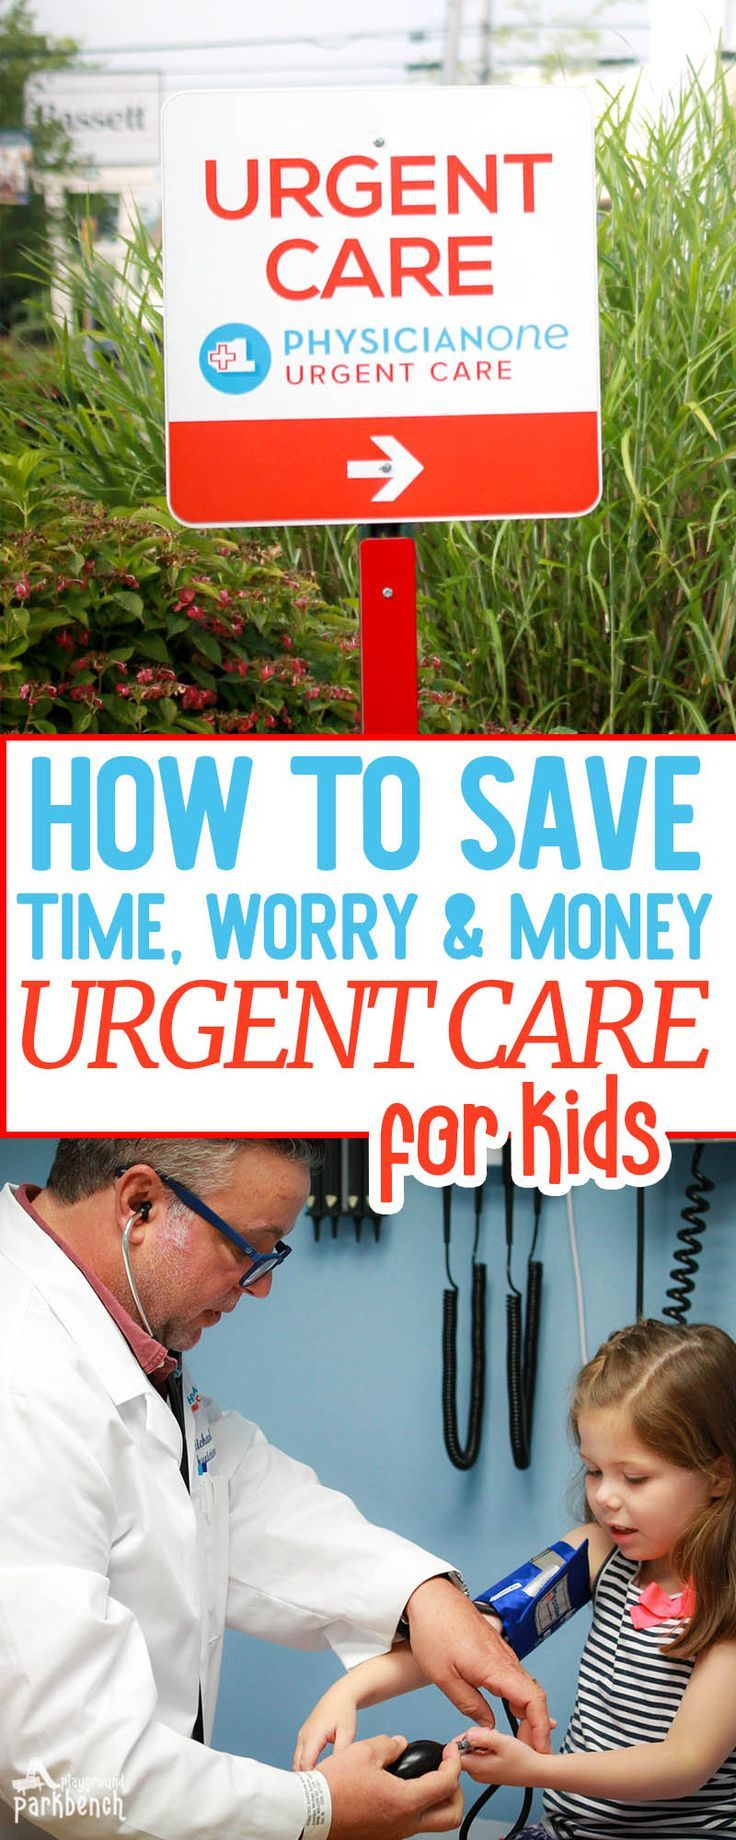 How Urgent Care for Kids Can Save You Time, Worry & Money